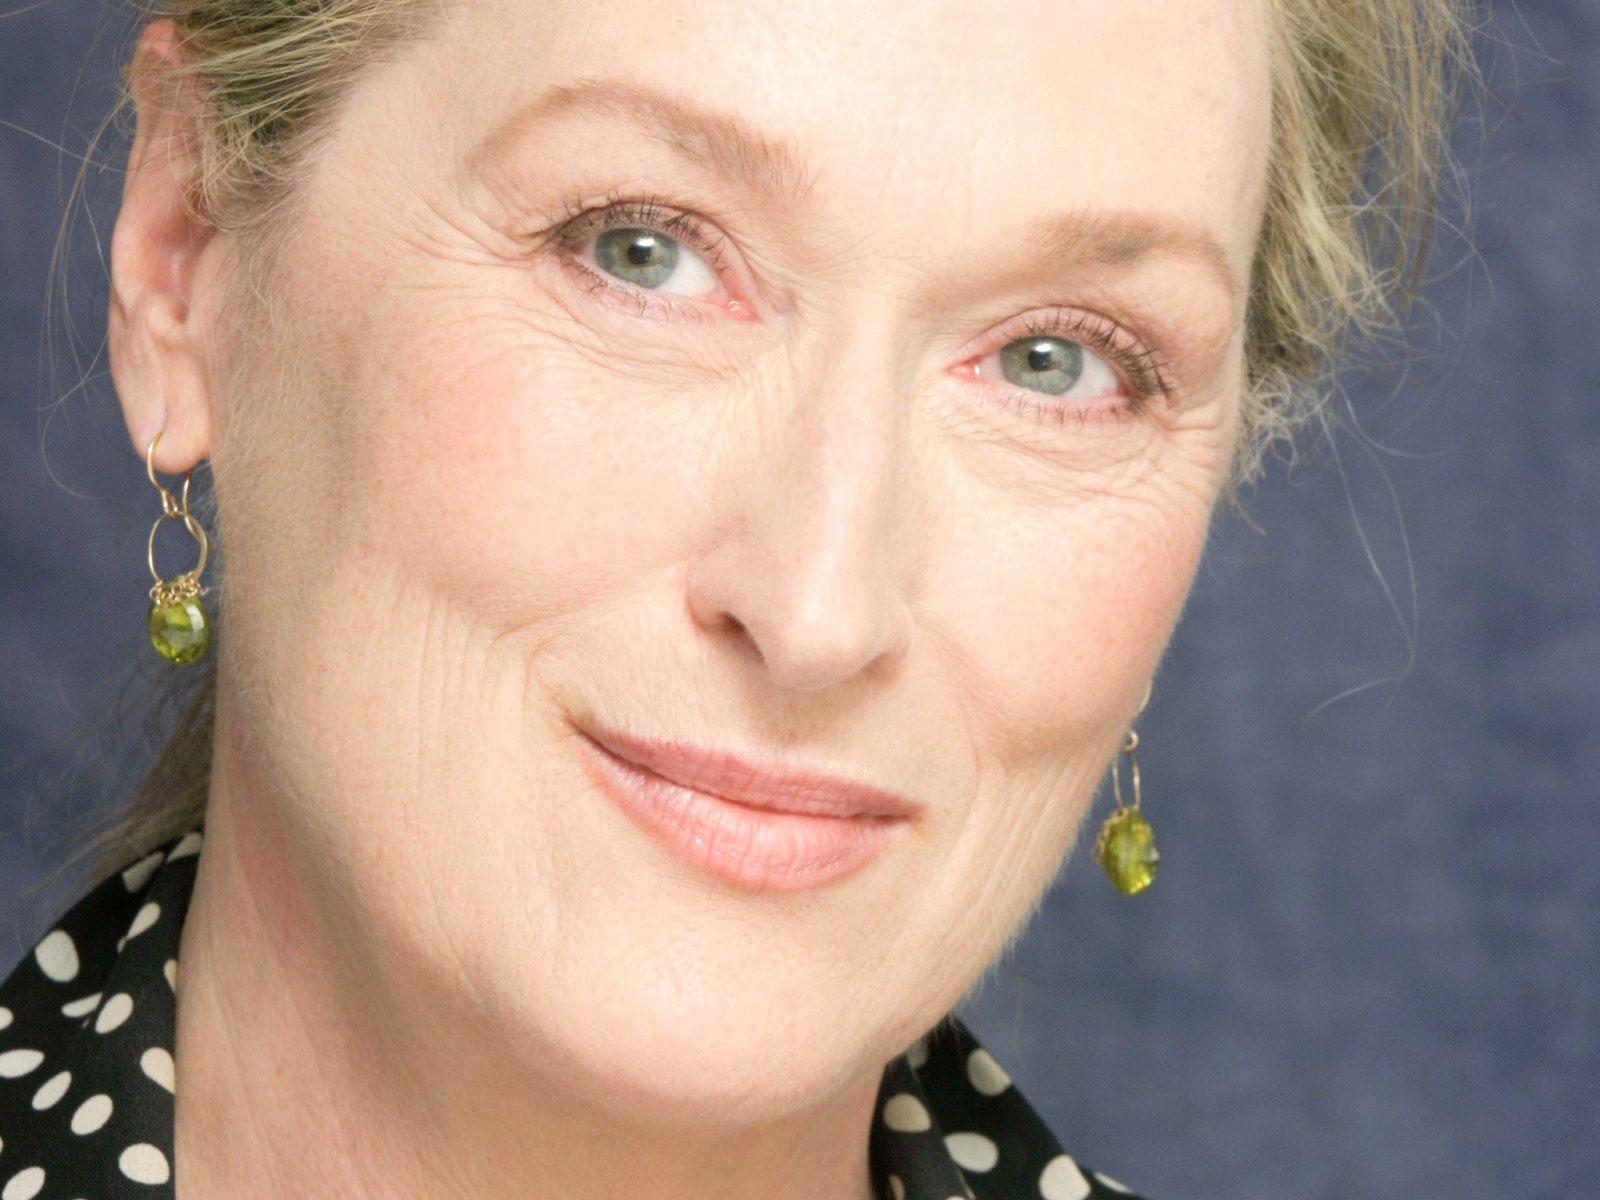 Van and Meryl streep on Pinterest